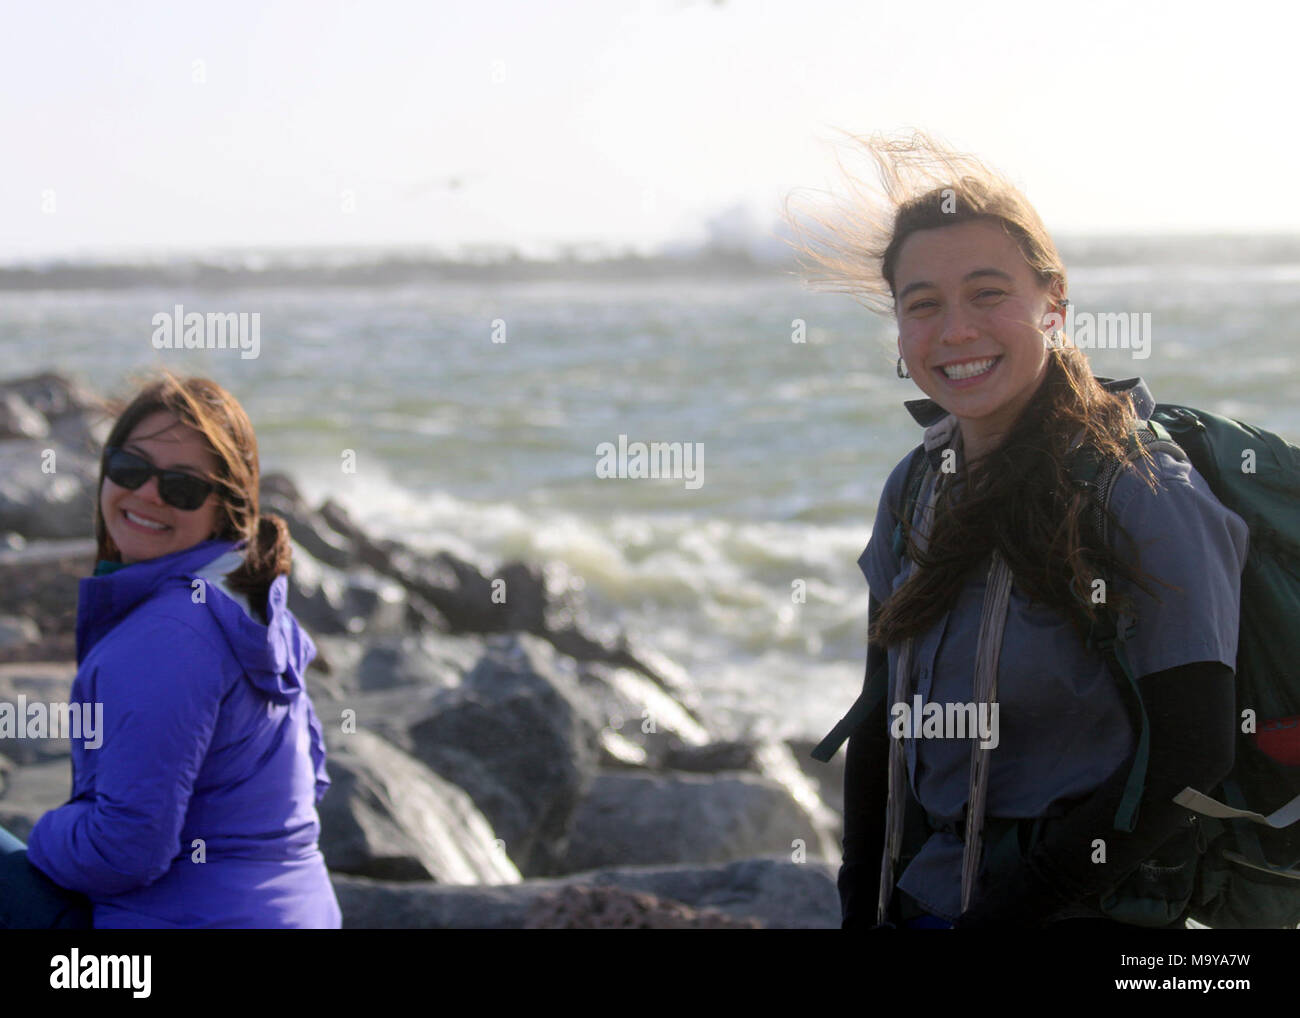 Kendra Chan (left) and Karen Sinclair, fish and wildlife biologists. OXNARD, Calif. (May 6, 2017) Kendra Chan (left) and Karen Sinclair, fish and wildlife biologists with the U.S. Fish and Wildlife Service in Ventura, during the biannual brown pelican survey along the West Coast. The survey is conducted with the intent to gather information needed to understand how potential threats from changes in weather patterns, prey availability, or changes in habitat or contaminants could impact California brown pelican populations over time. Stock Photo